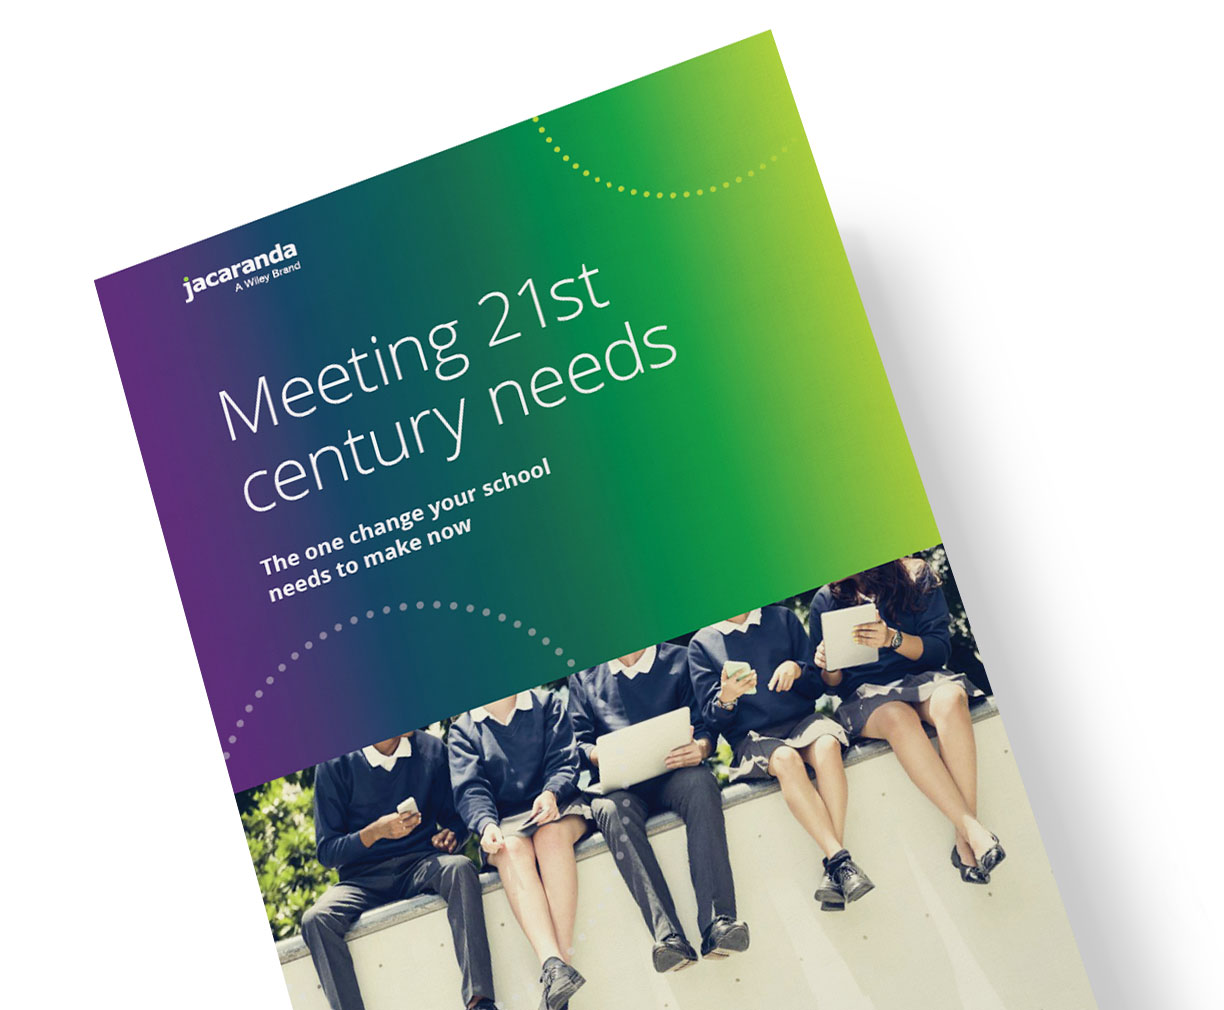 meeting-21st-century-needs-A4-page-v5